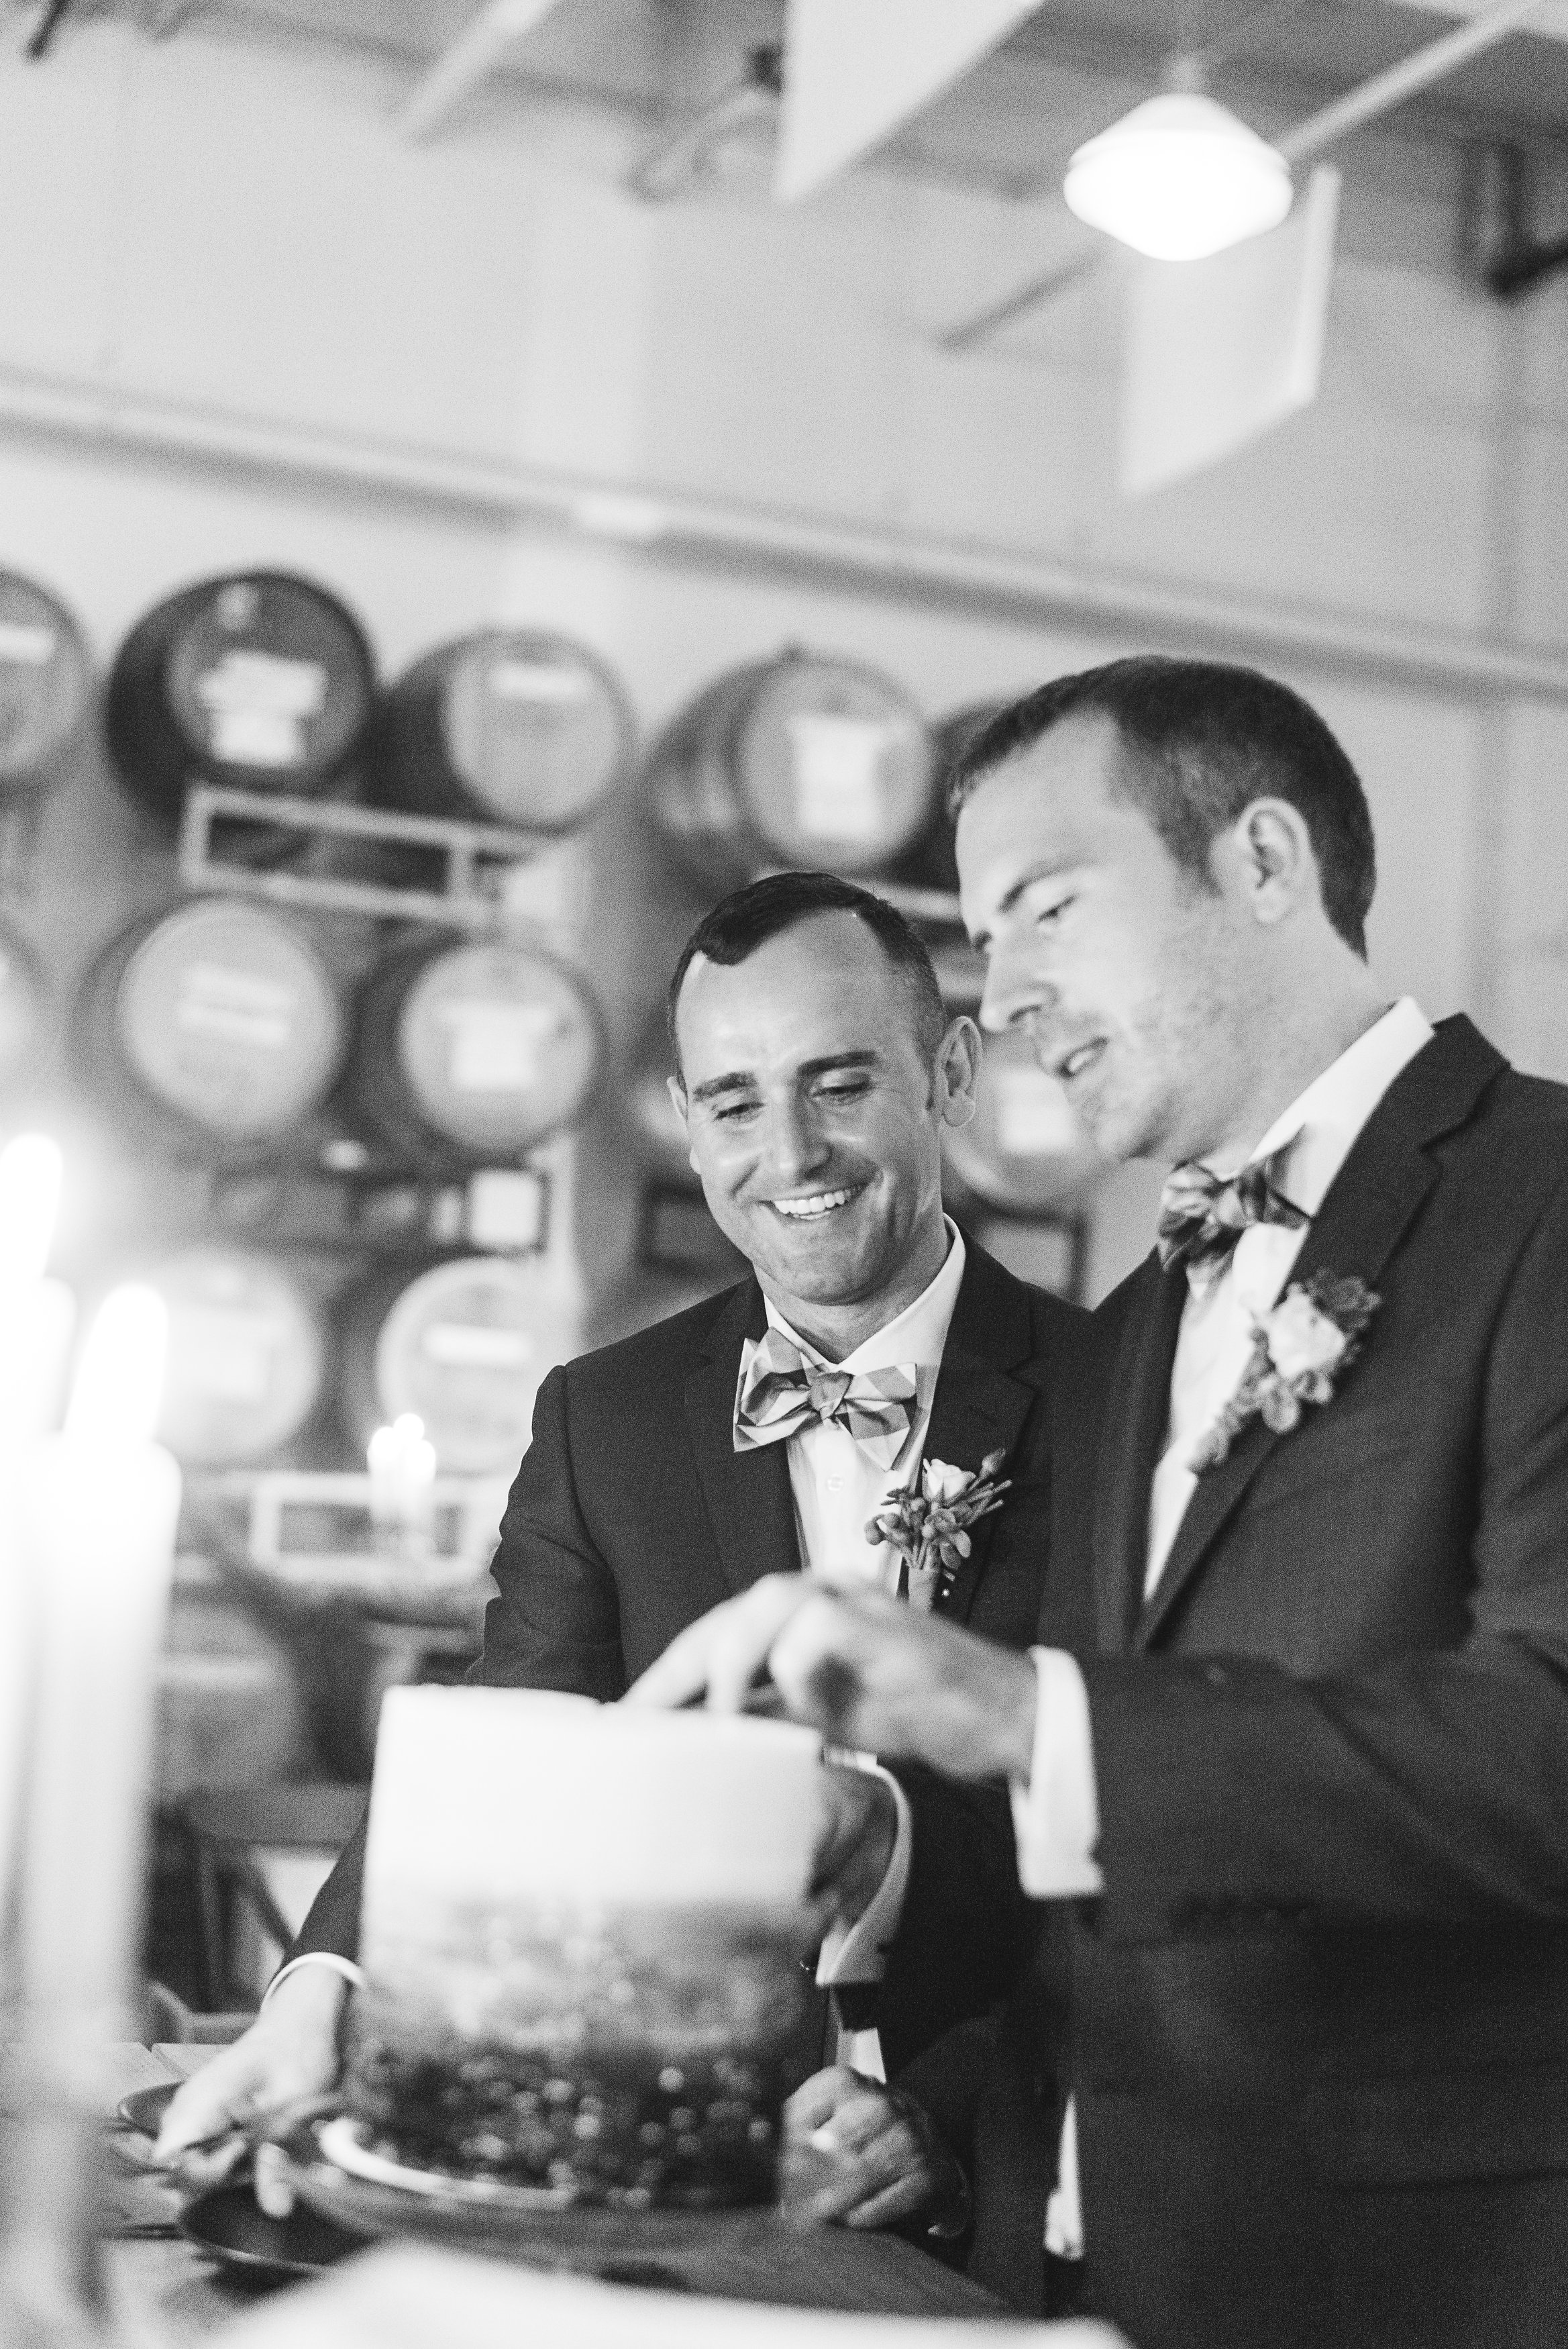 matt+nick-wedding-preview-81.jpg